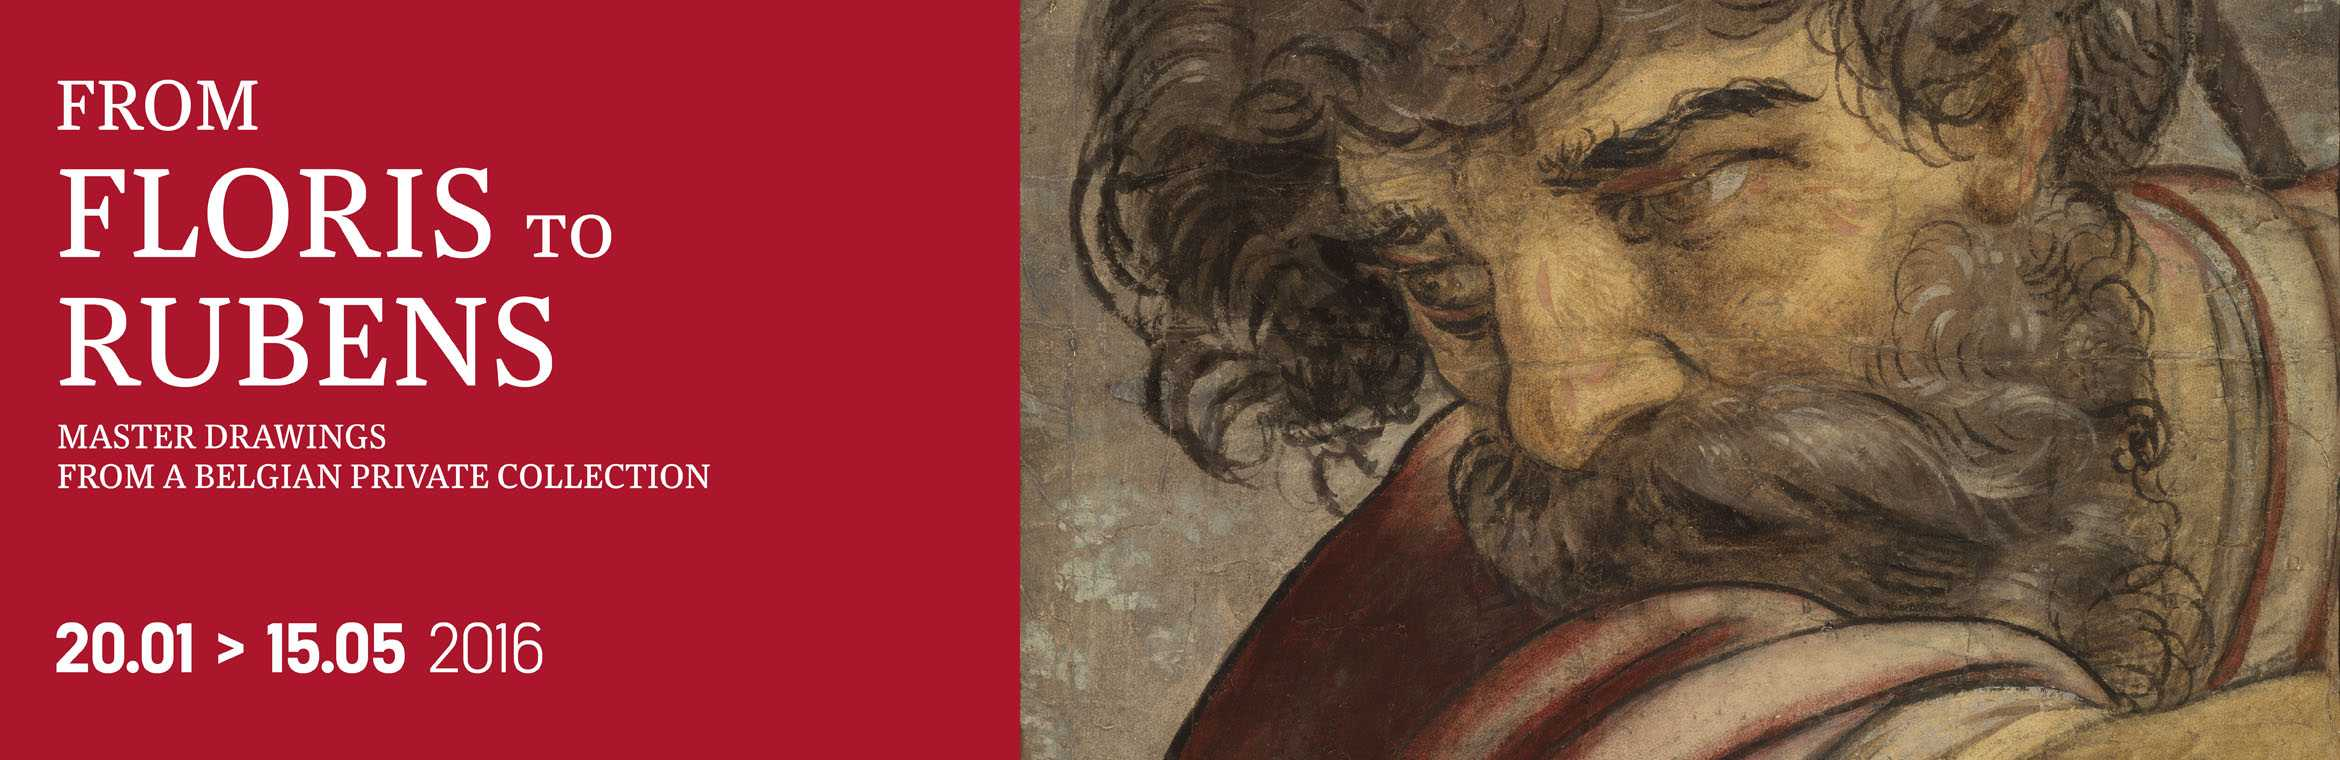 De Floris to Rubens / Master drawings from a Belgian private collection  / 20.01 > 15.05 2016